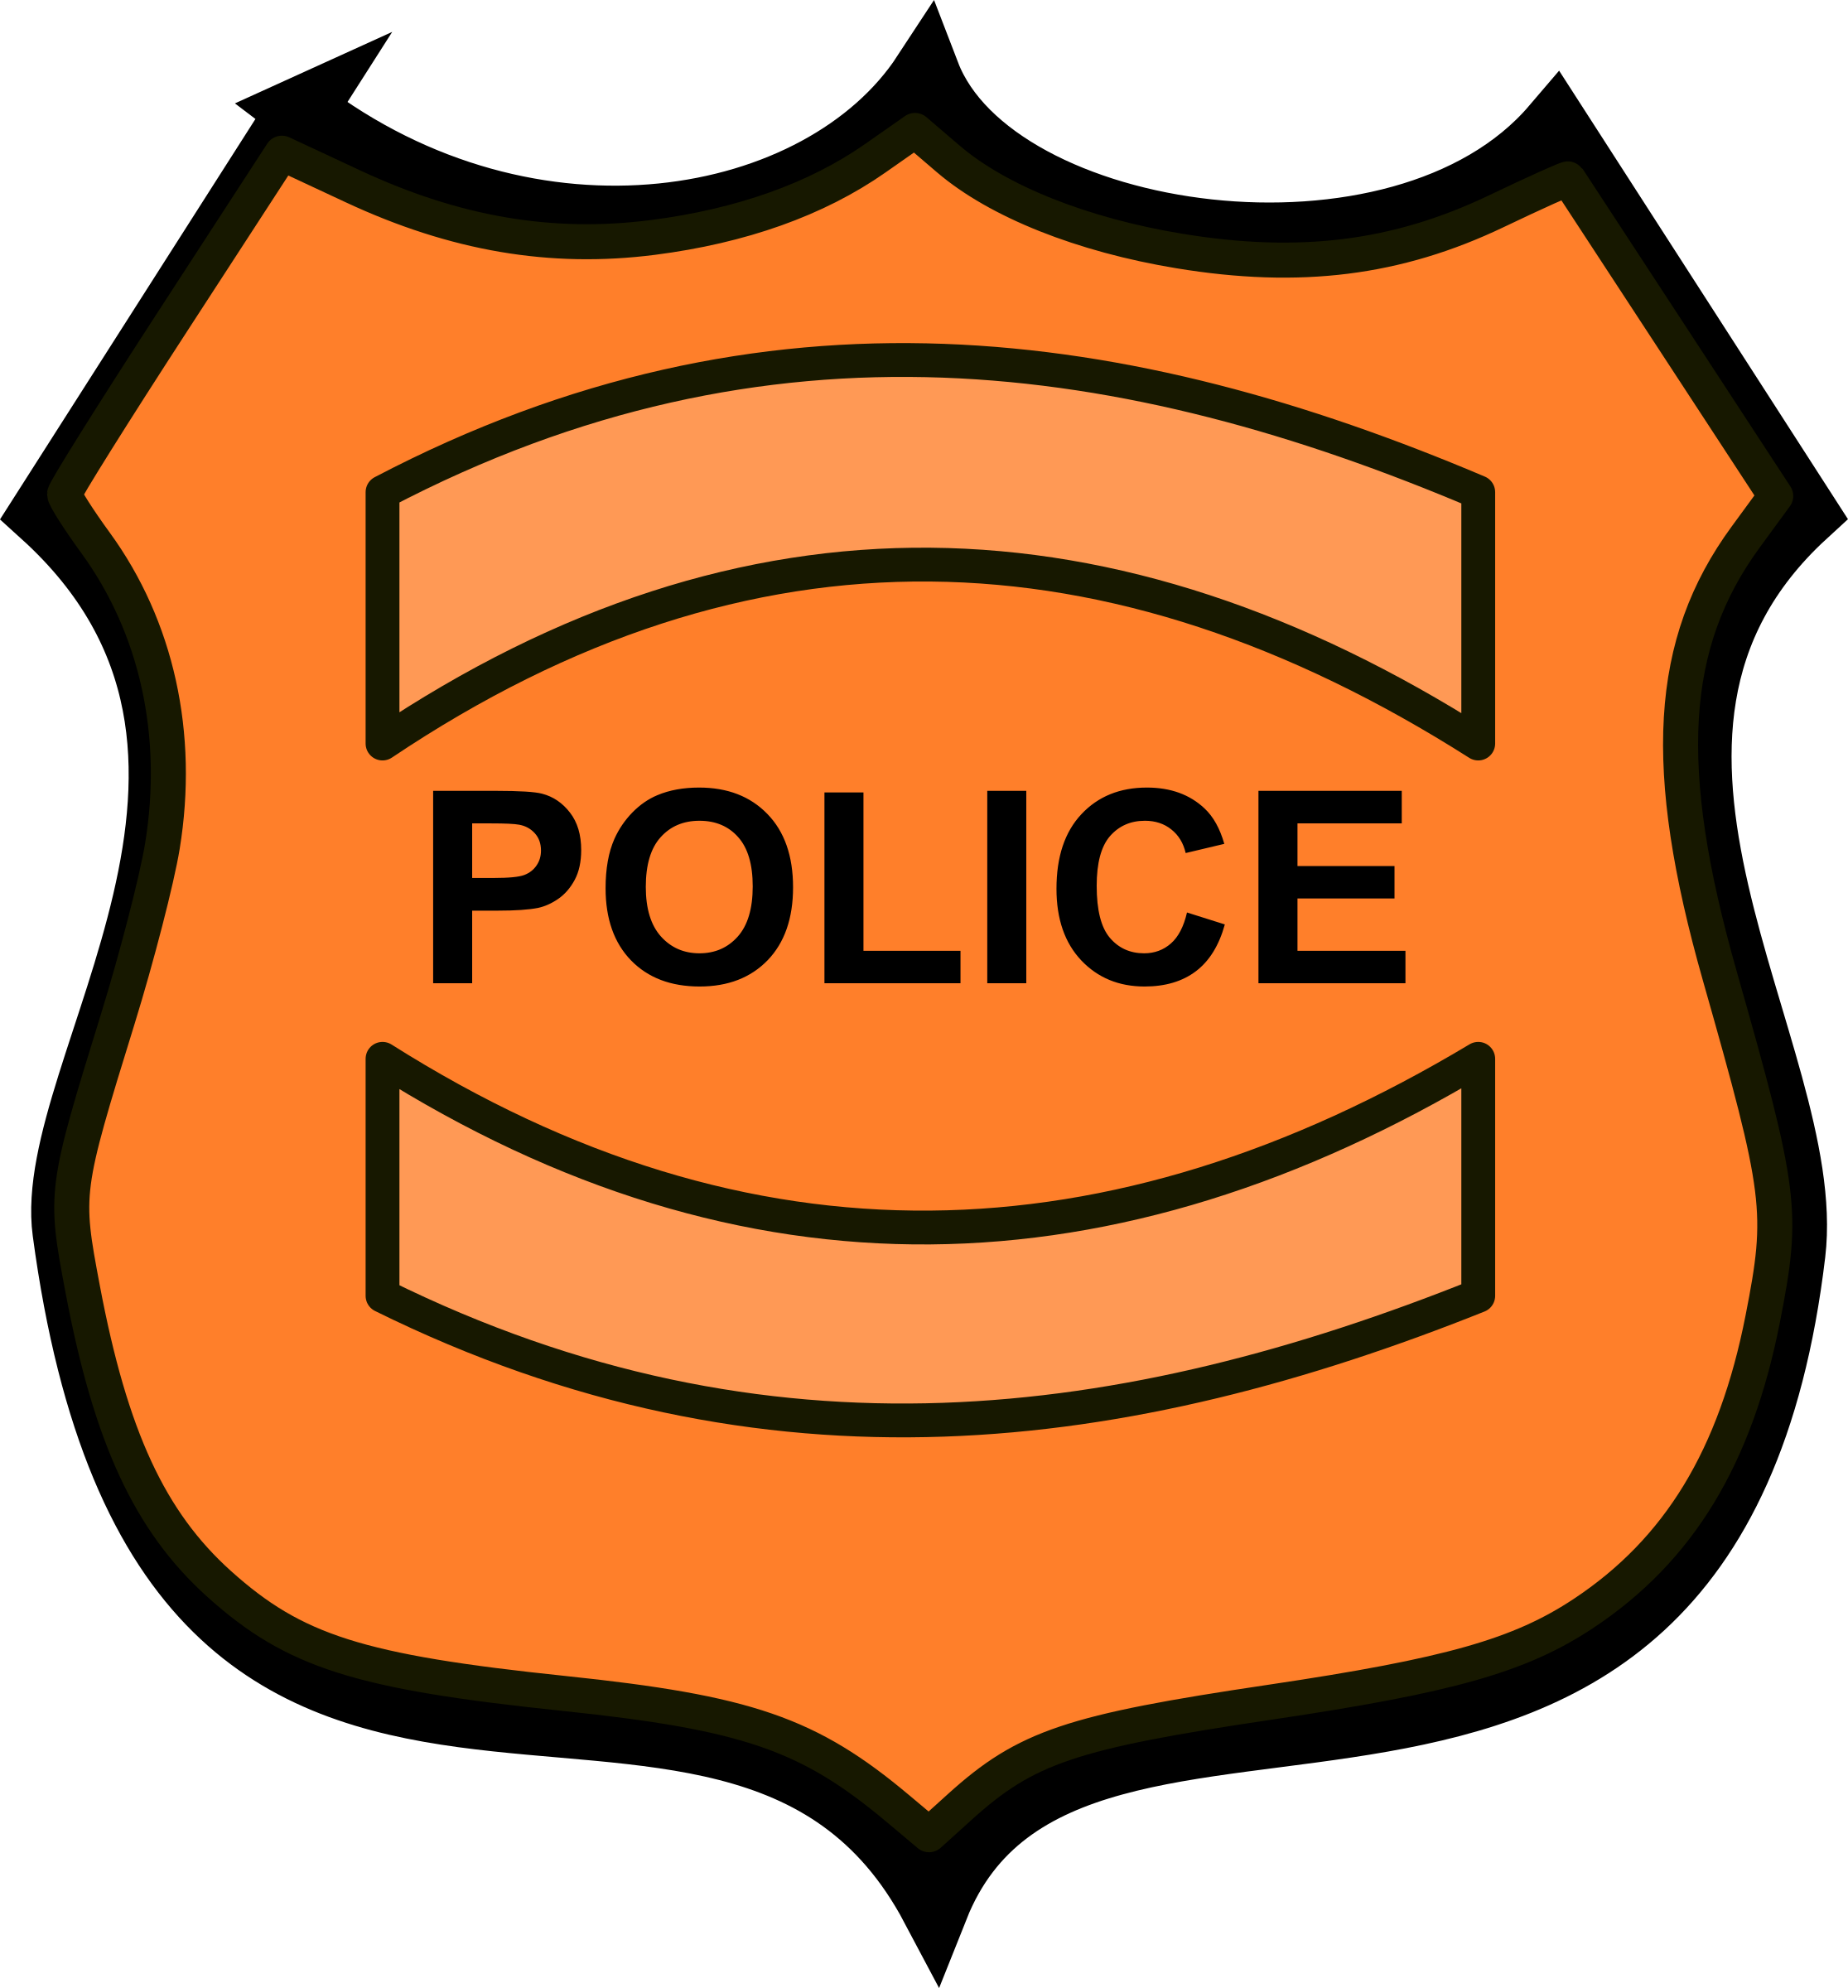 Police big image png. Badge clipart